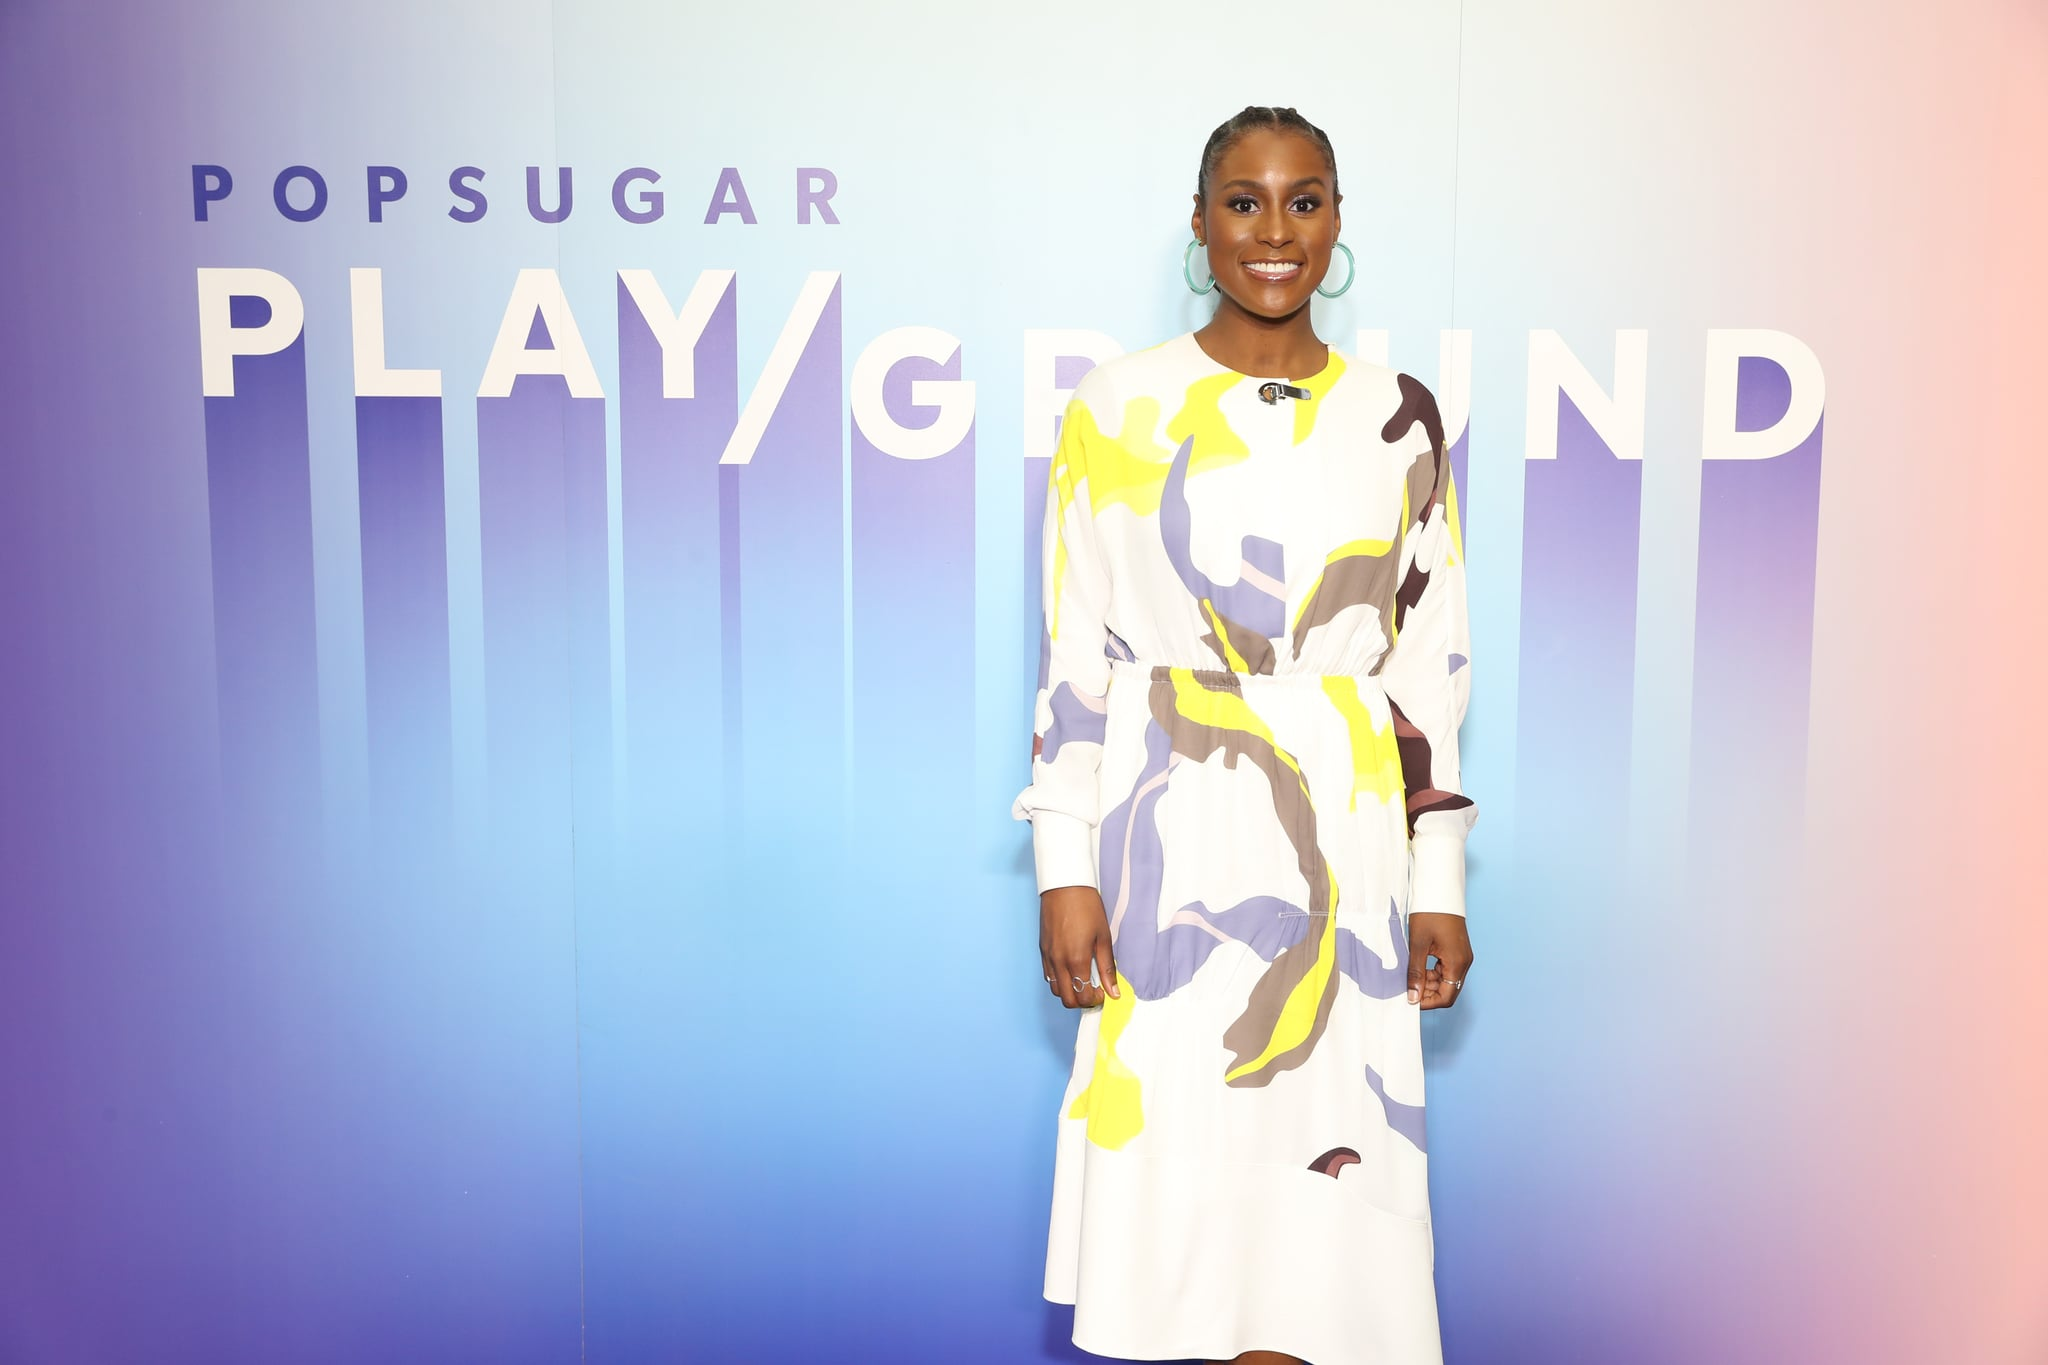 NEW YORK, NEW YORK - JUNE 23: Issa Rae attends the POPSUGAR Play/Ground at Pier 94 on June 23, 2019 in New York City. (Photo by Cindy Ord/Getty Images for POPSUGAR and Reed Exhibitions )